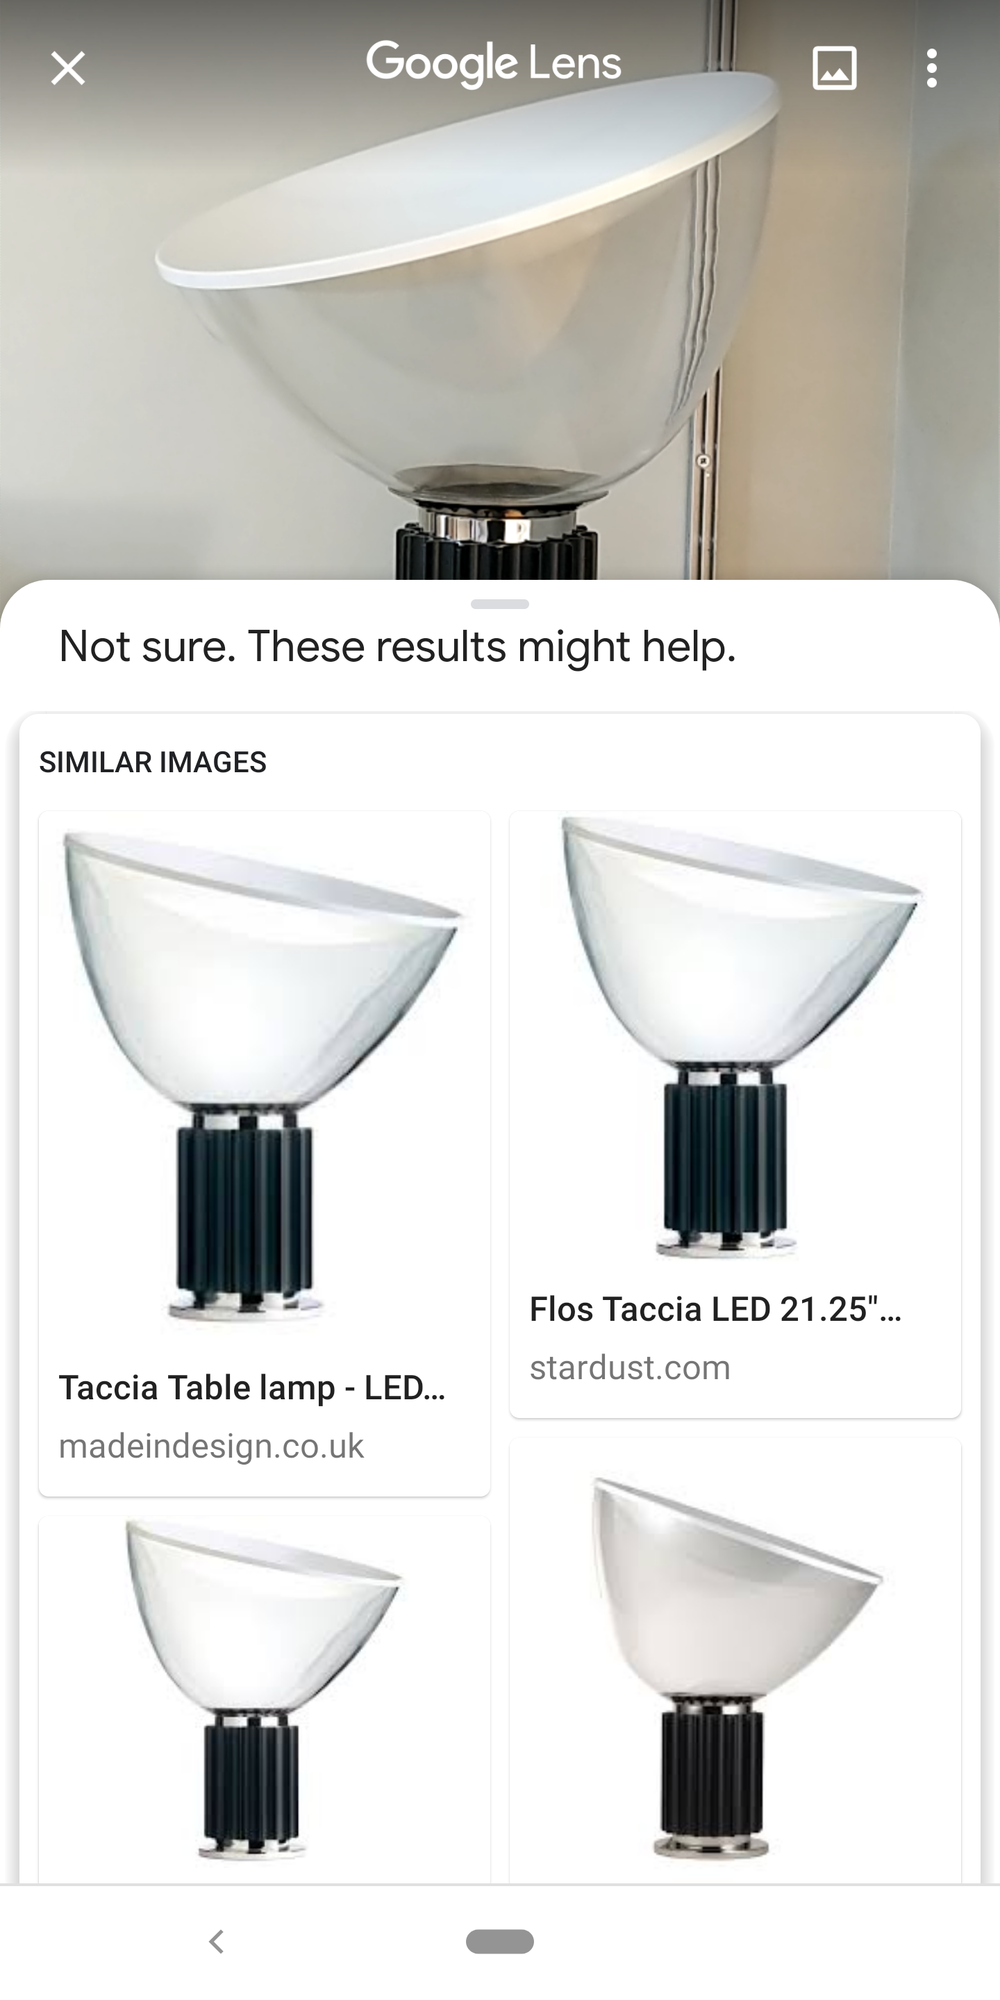 Yes, this is a Taccia lamp